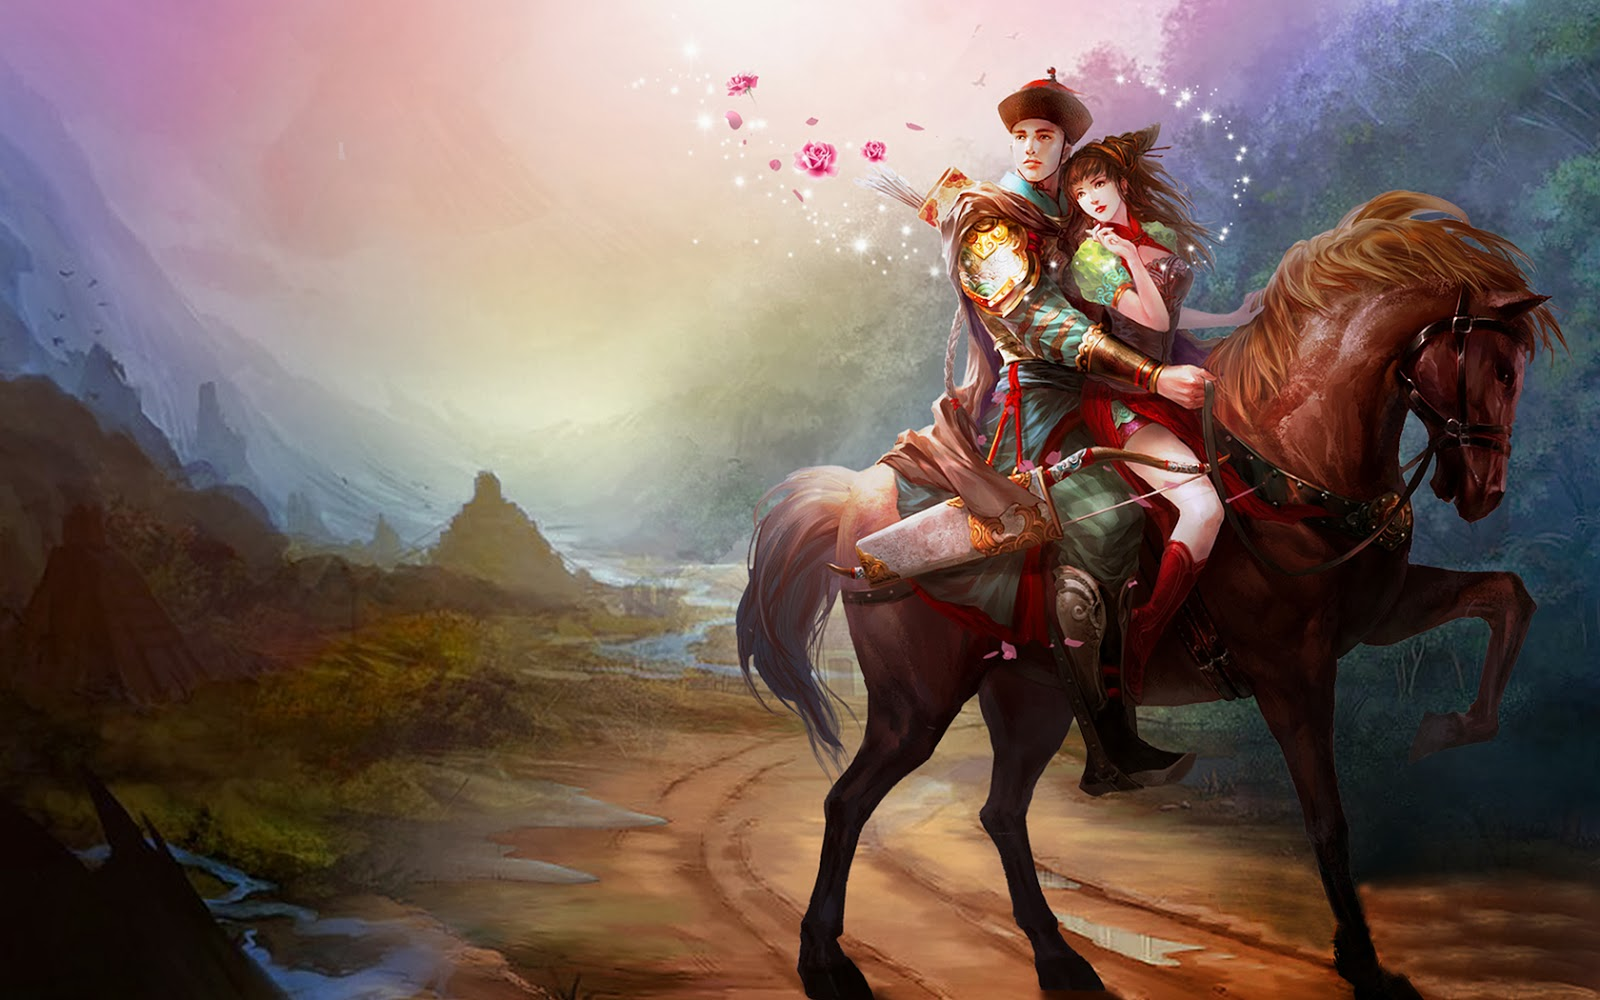 Asian-lovers-riding-horse-romantic-paintings-wallpapers.jpg